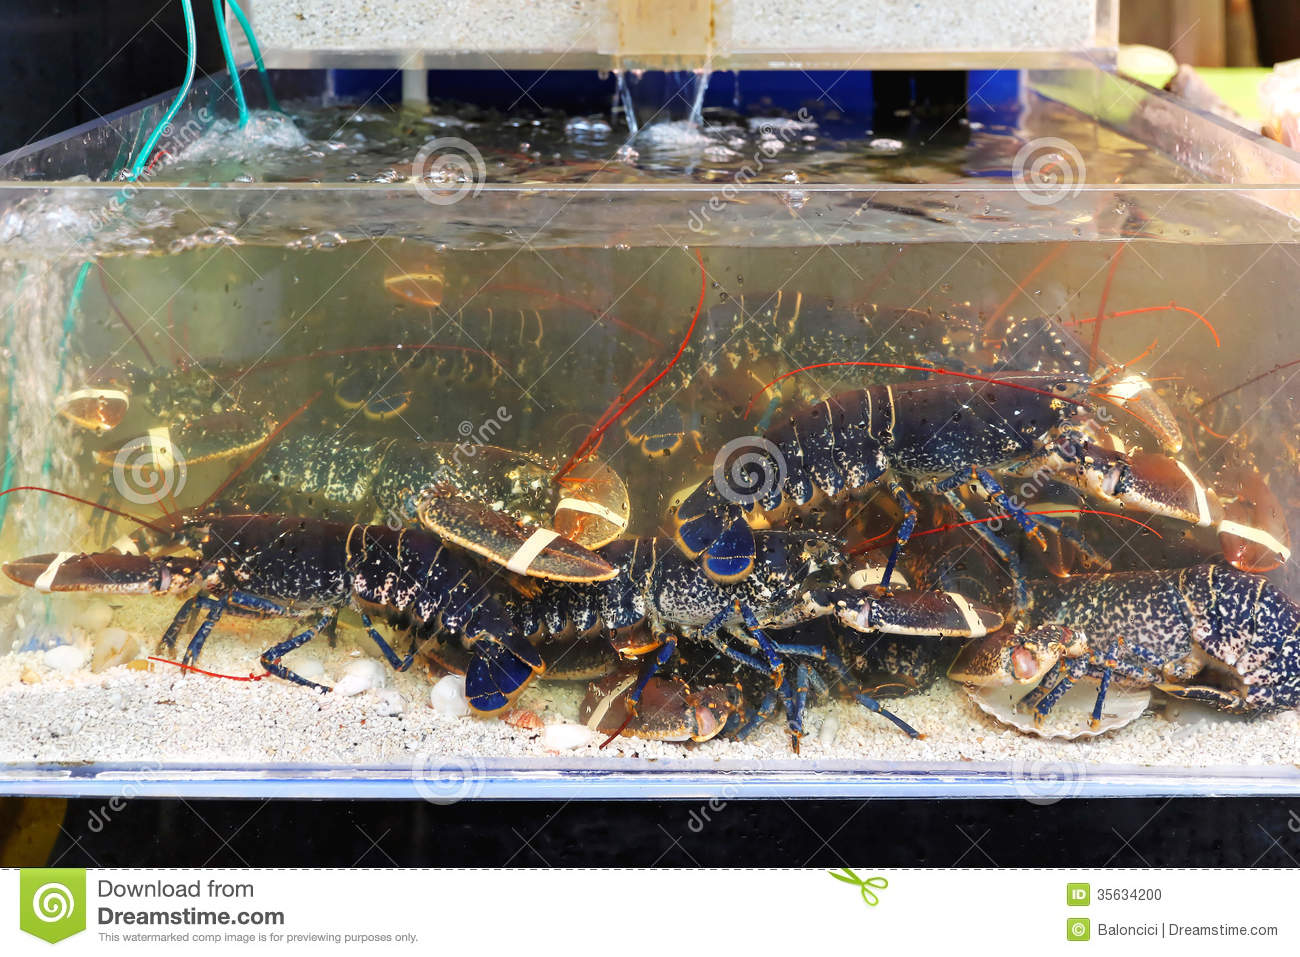 Lobster in tank stock photo. Image of crustaceans, food - 35634200